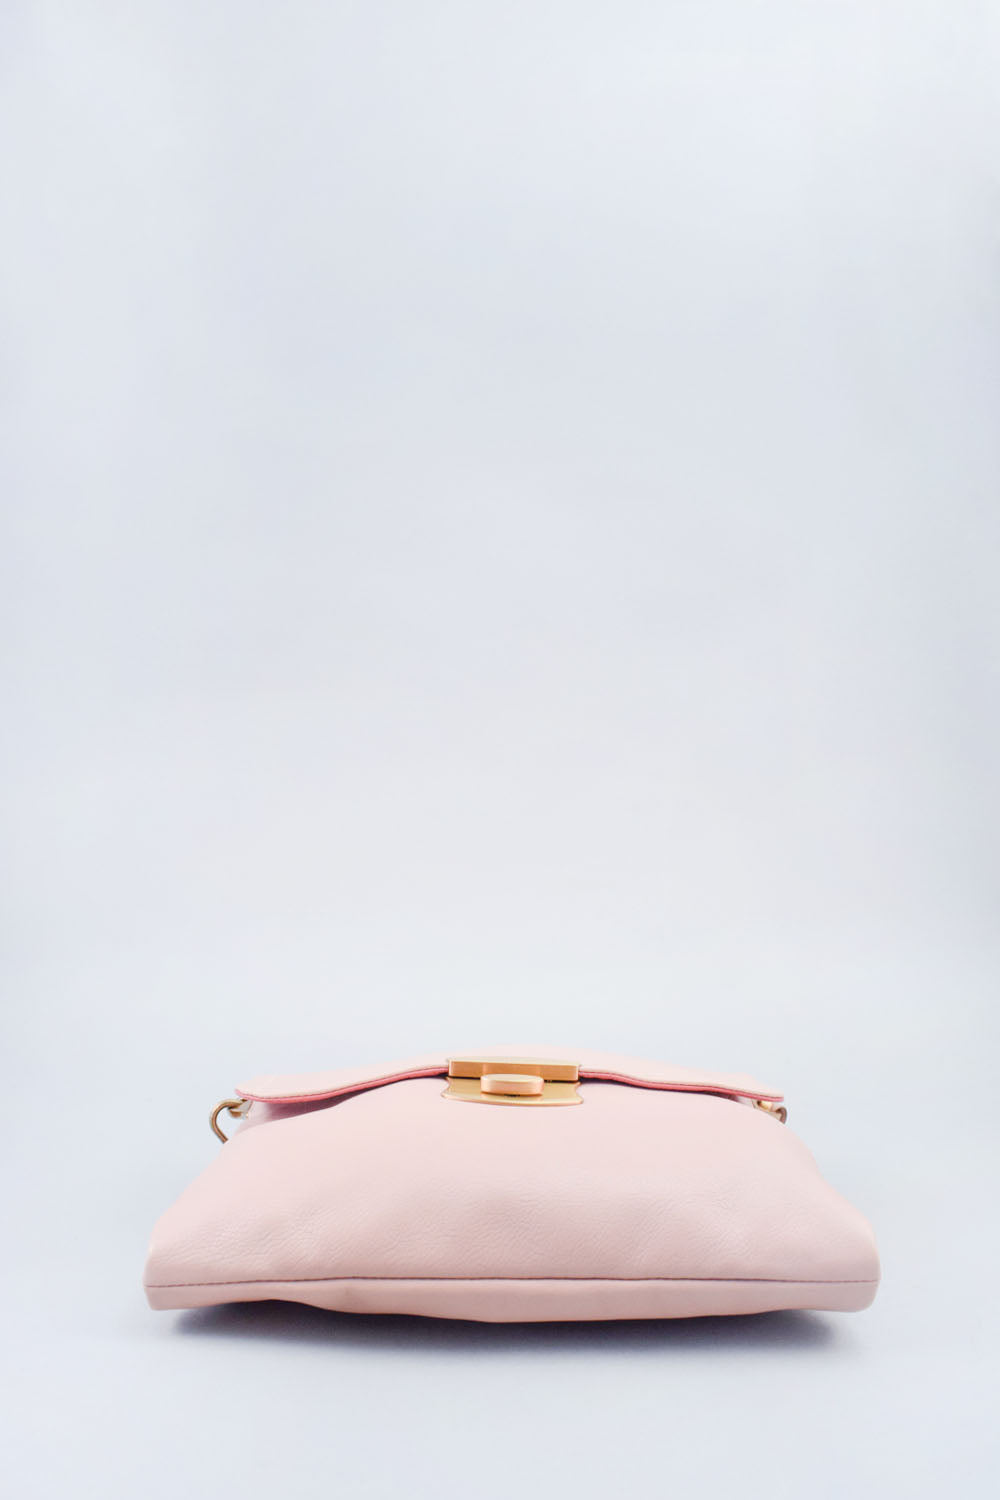 Prada Pink Leather Shoulder Bag w/ Chain